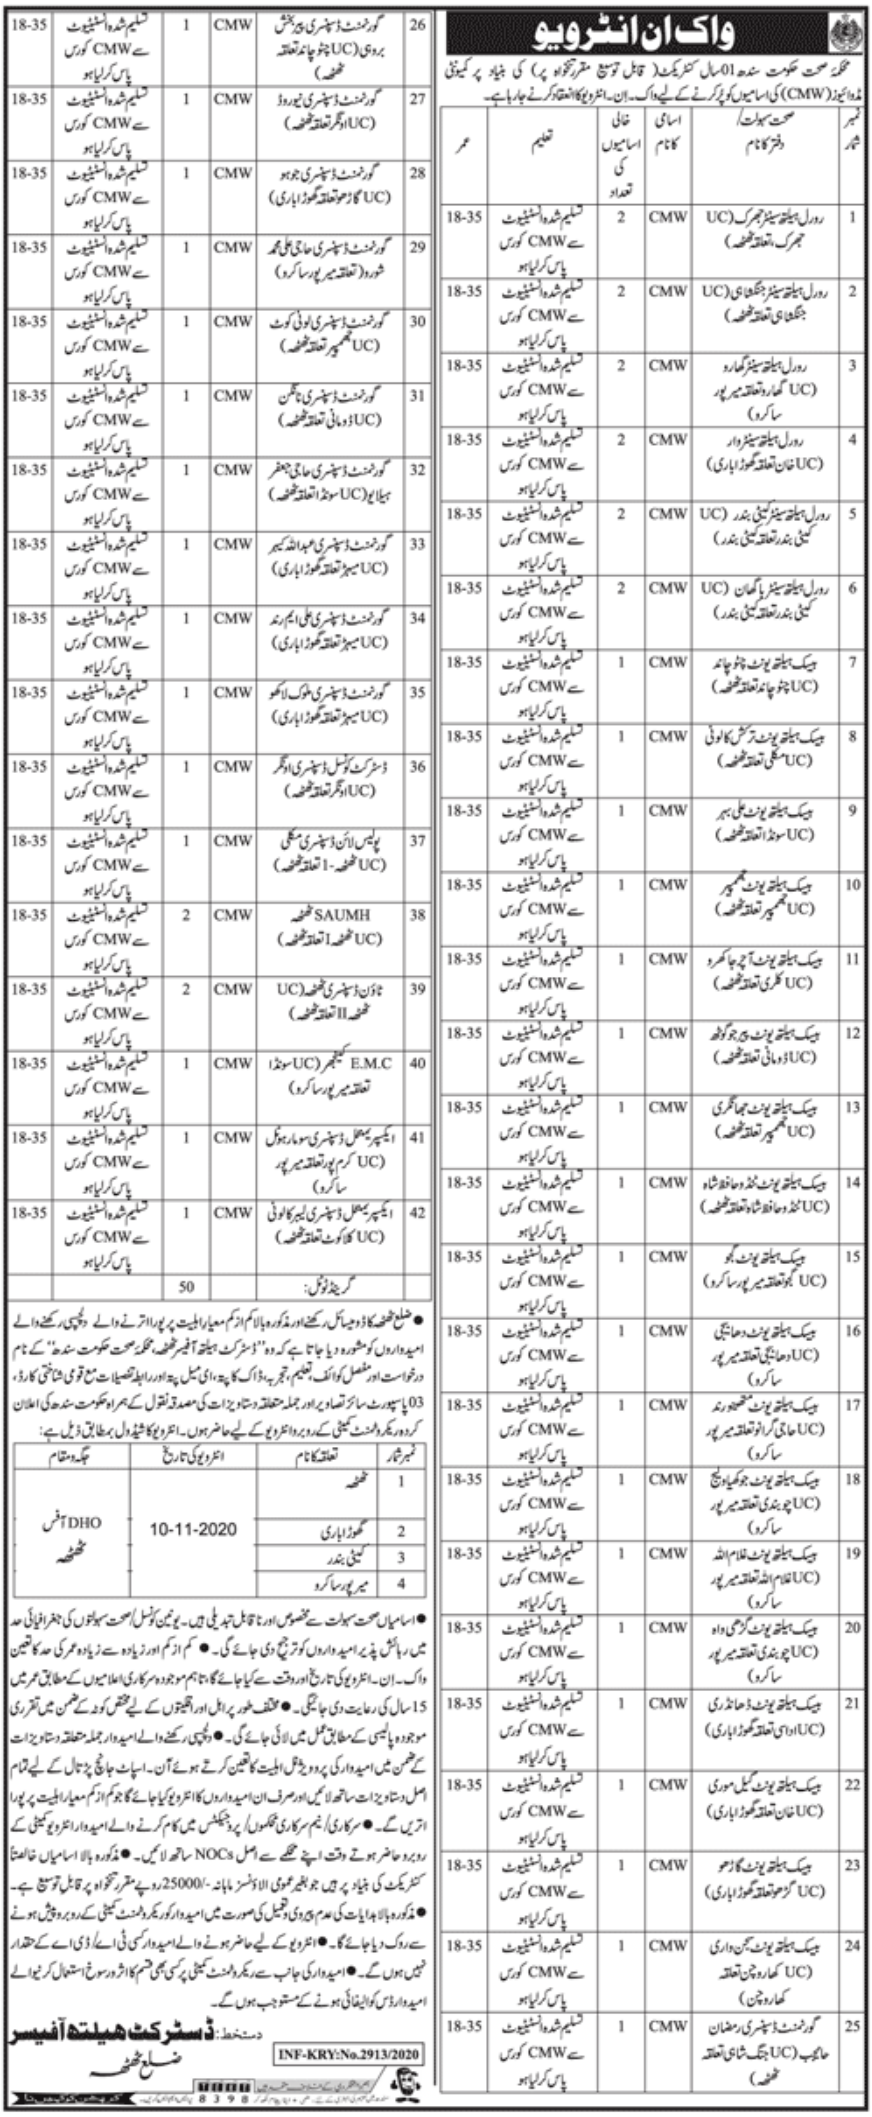 Government of Sindh Health Department Jobs October 2020